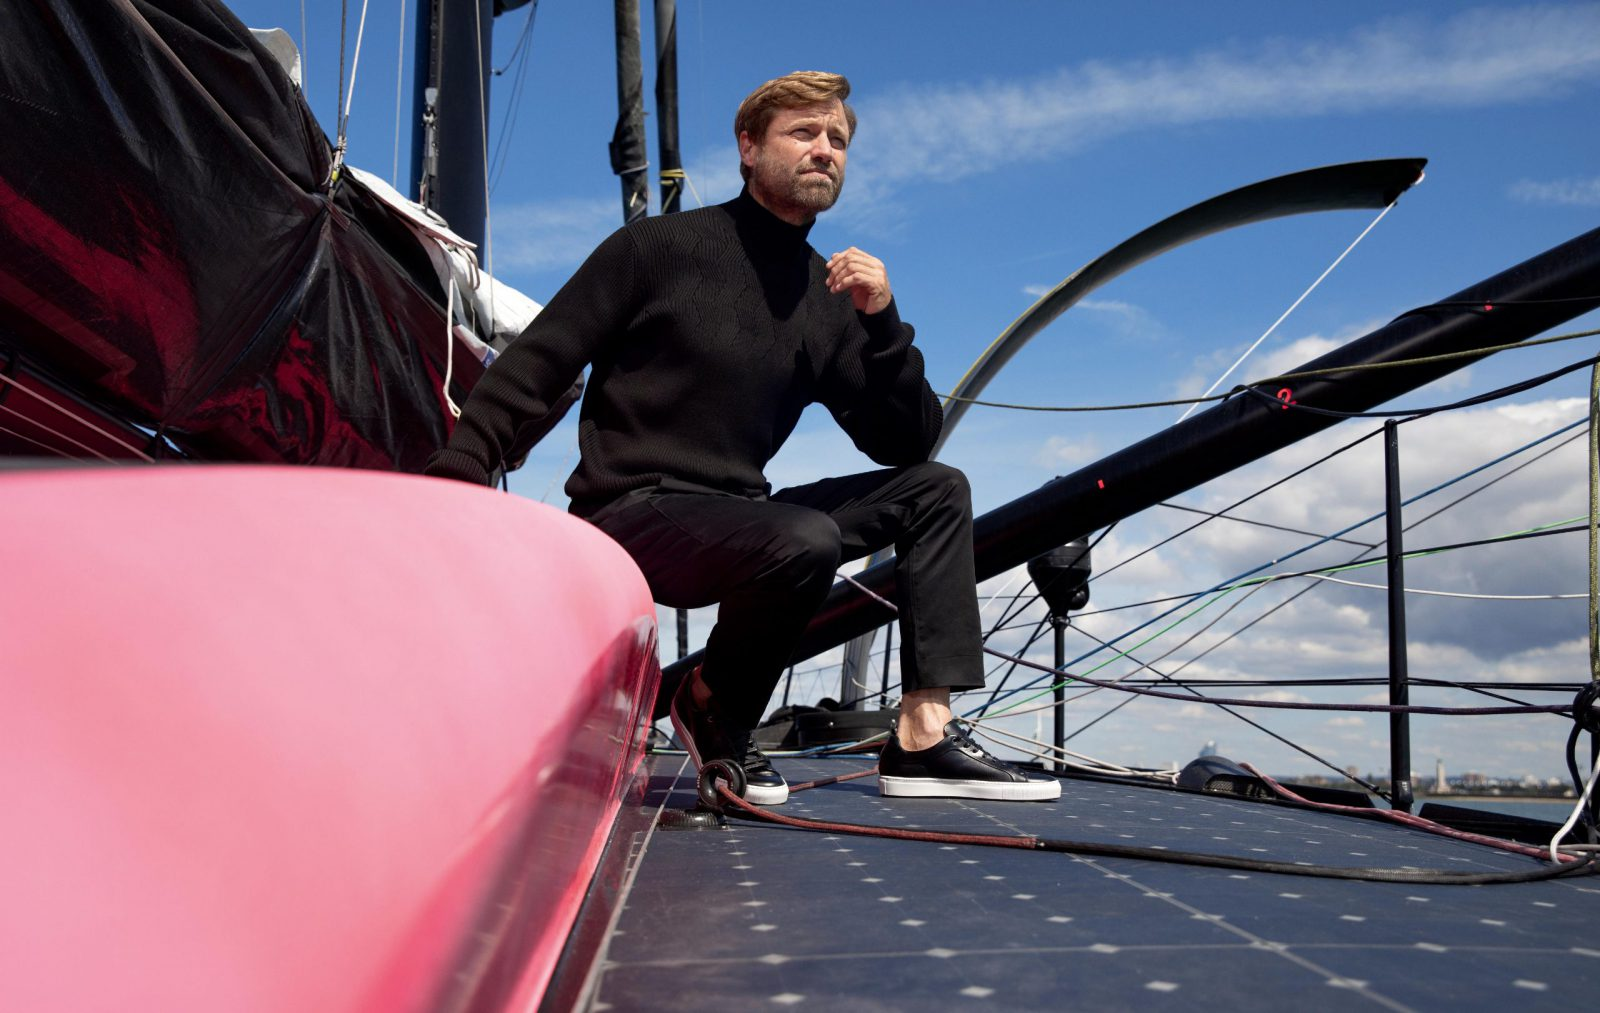 Fair winds to Fairview friend Alex Thomson as he prepares to set sail in the 2020 Vendée Globe